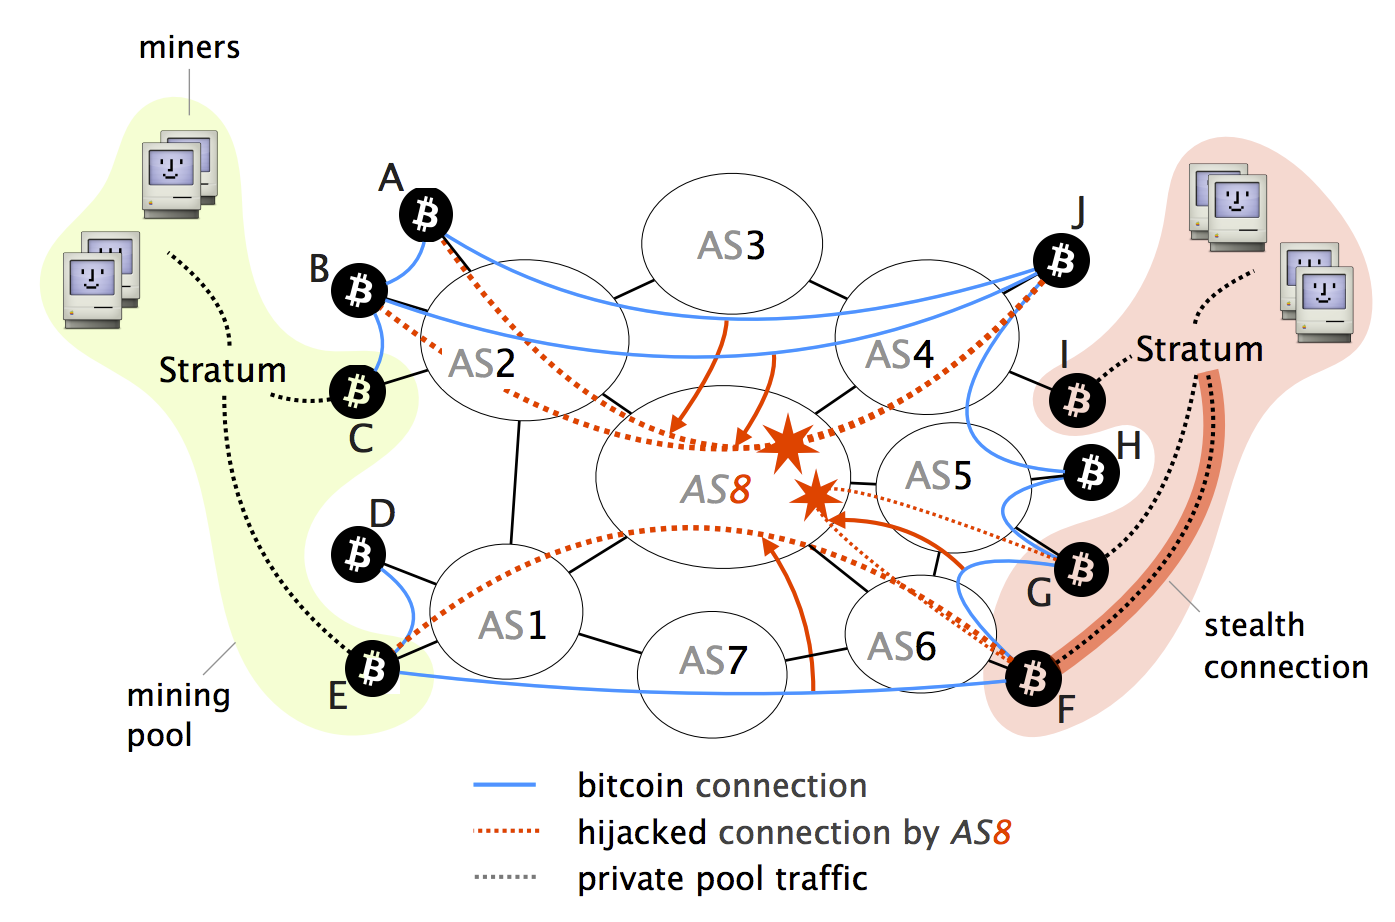 Bgp hijacking for cryptocurrency profit sports betting sites australian